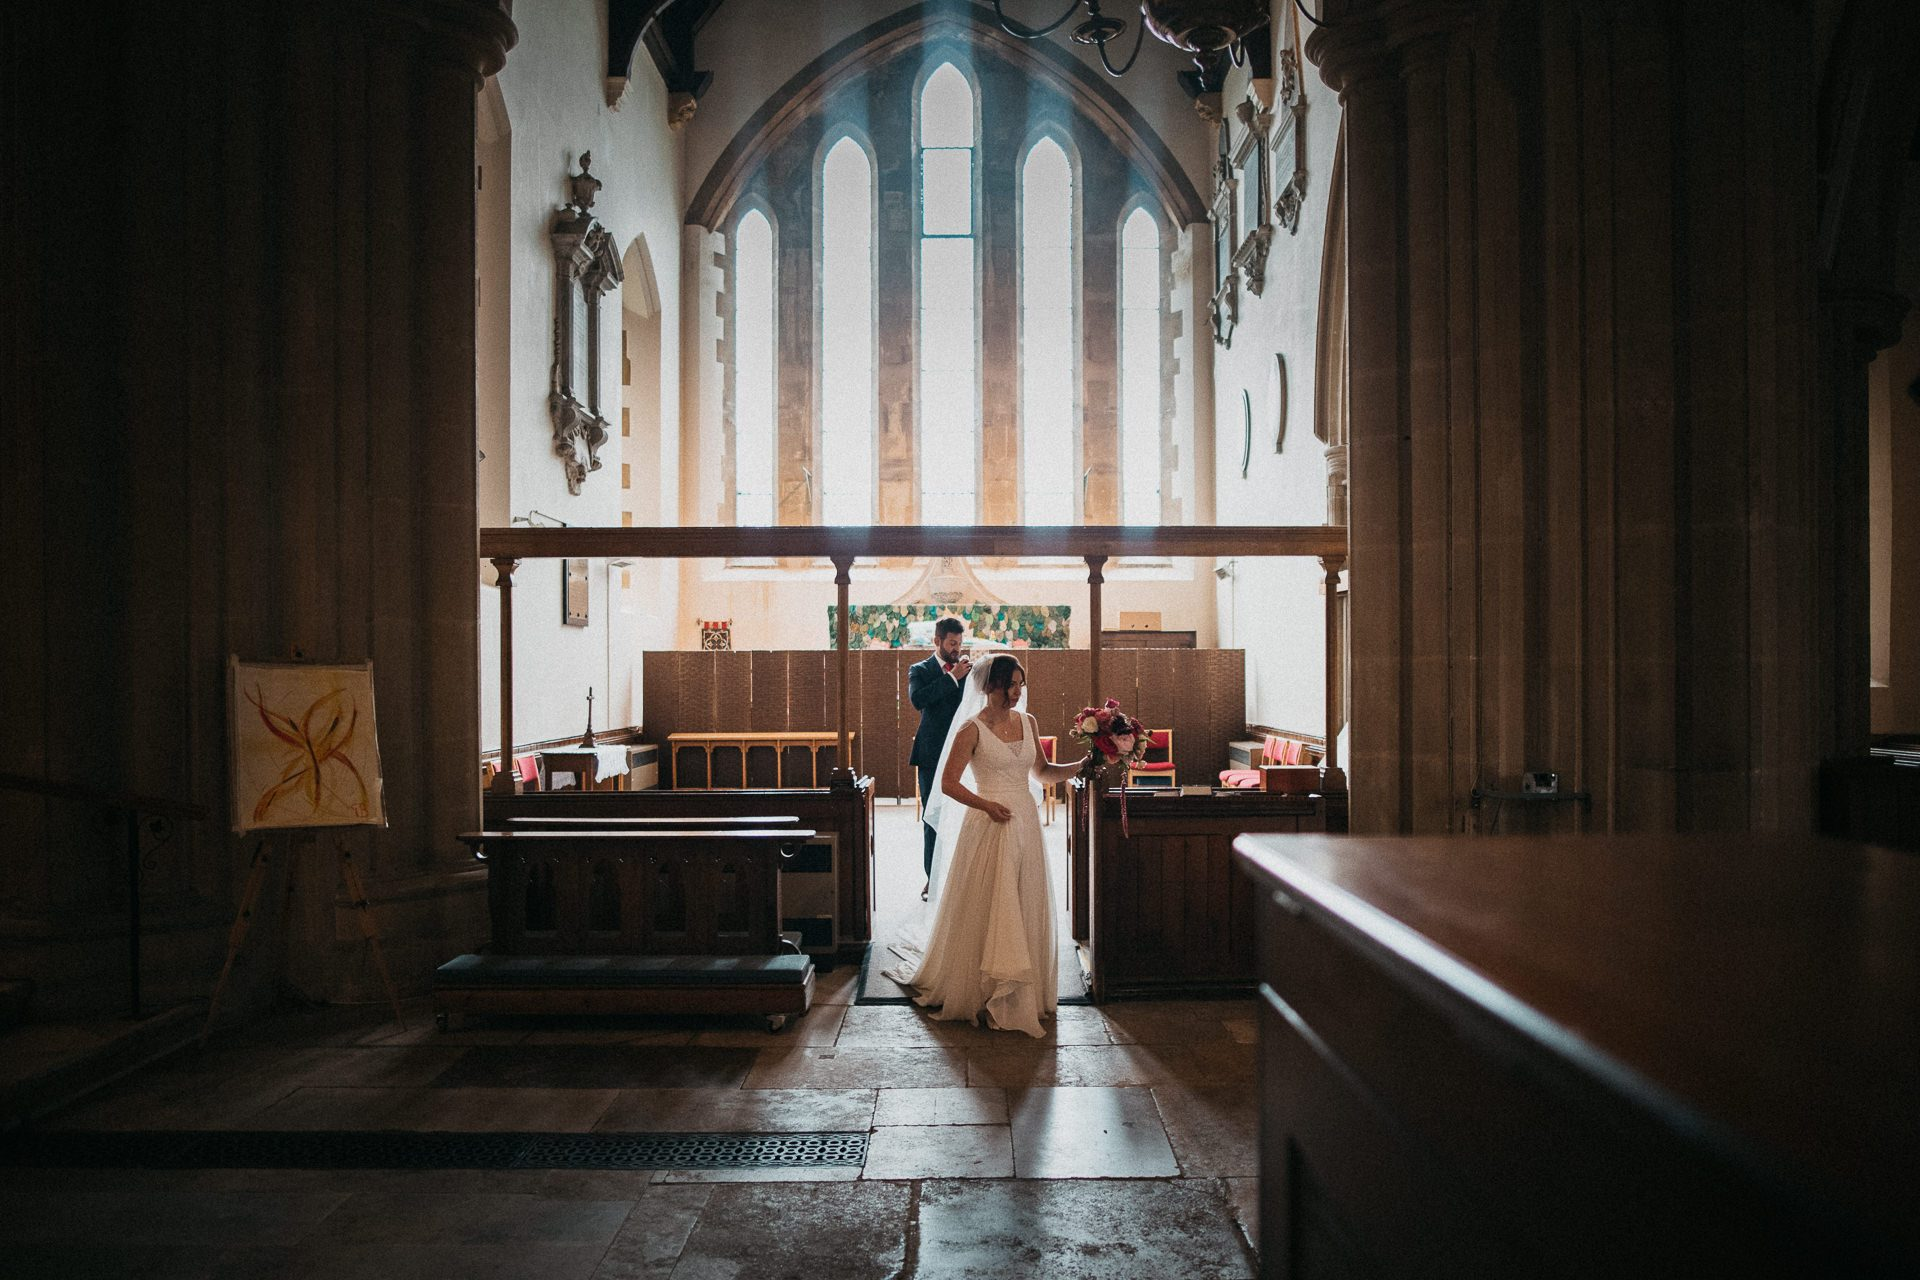 0100-DEVON-SOMERSET-WEDDING-PHOTOGRAPHER-0449-BEST-OF-2019-LOUISE-MAY-DEVON-SOMERSET-WEDDING-PHOTOGRAPHY-20190713-13-08-18-LM2_5606